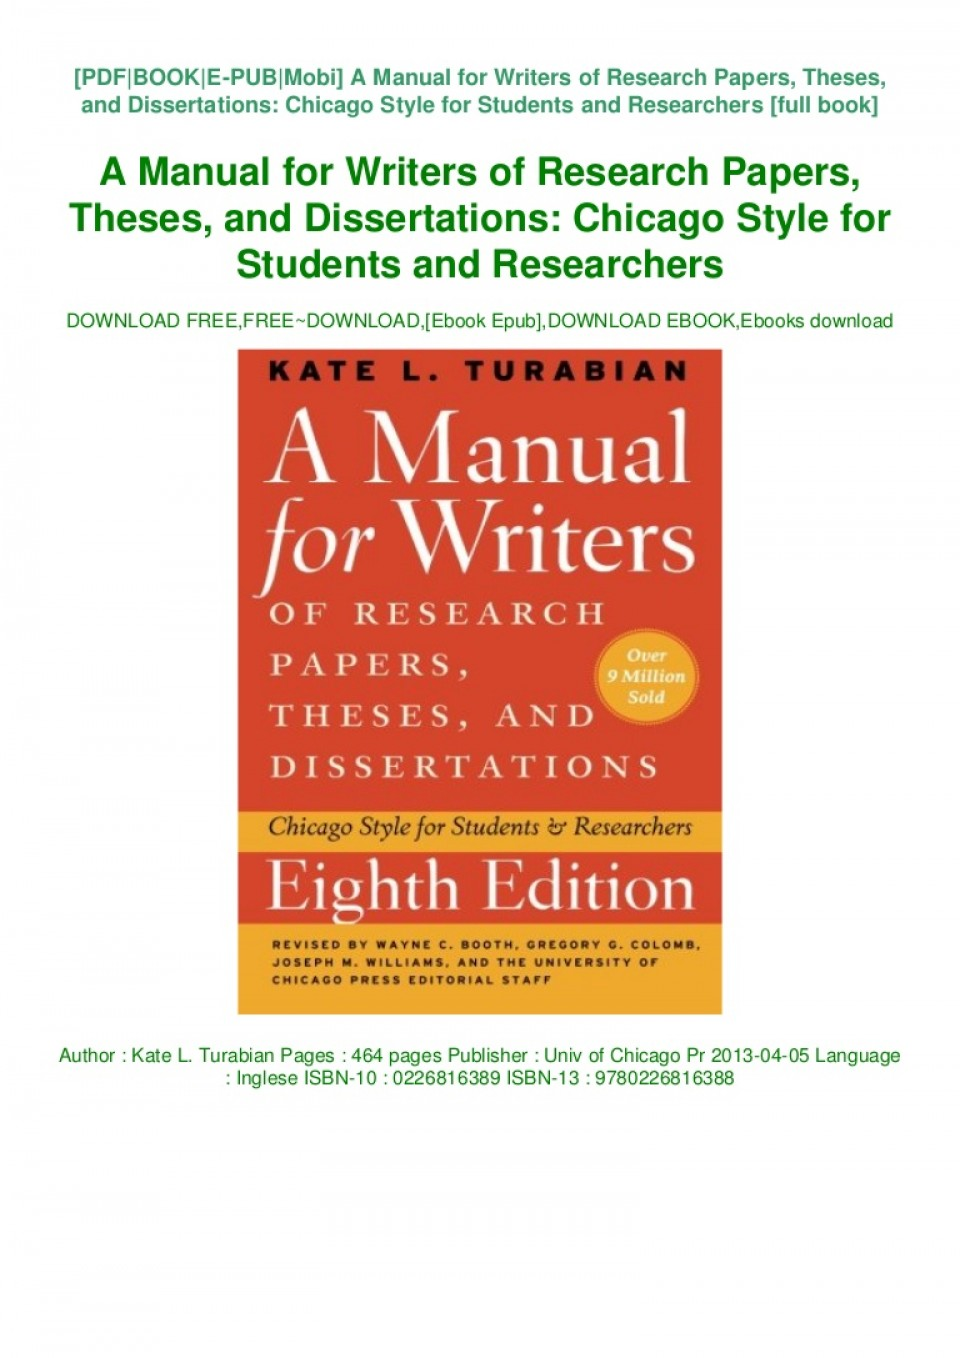 002 Manual For Writers Of Researchs Theses And Dissertations Ebook Book Thumbnail Unbelievable A Research Papers 960